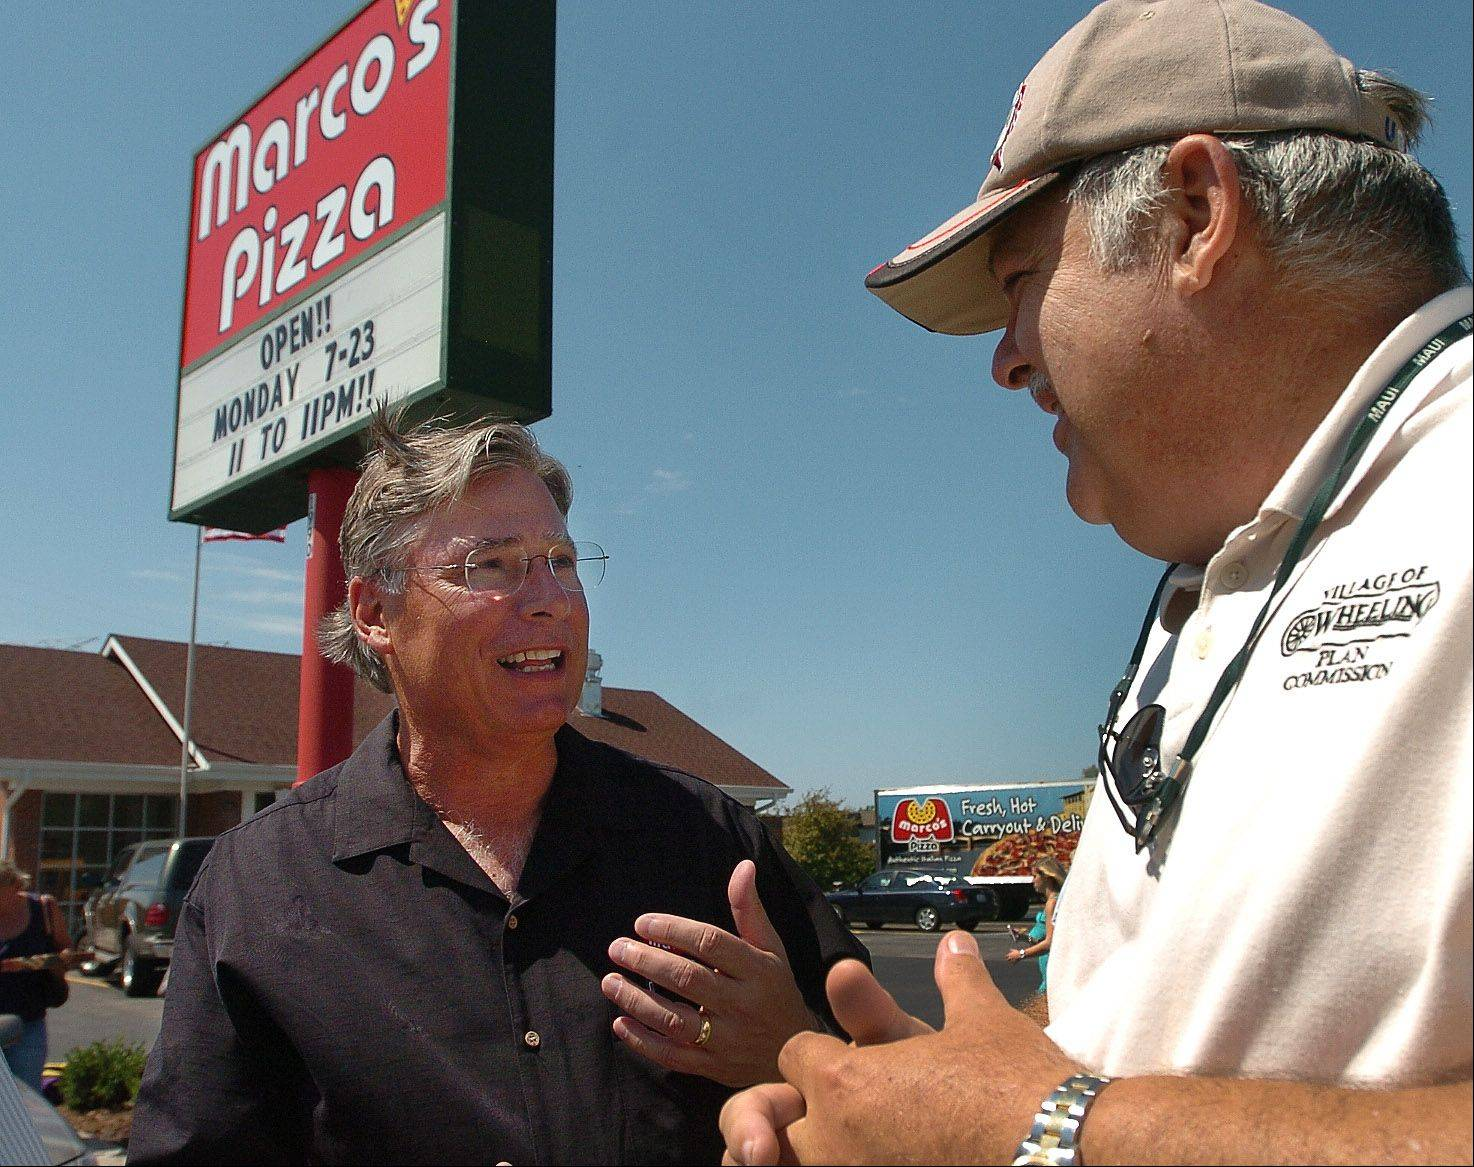 Marco's Pizza CEO Mack Butorac, left, chats with Wheeling Planning Commissioner Terry Steilen in front of the new Marco's Pizza in Wheeling.